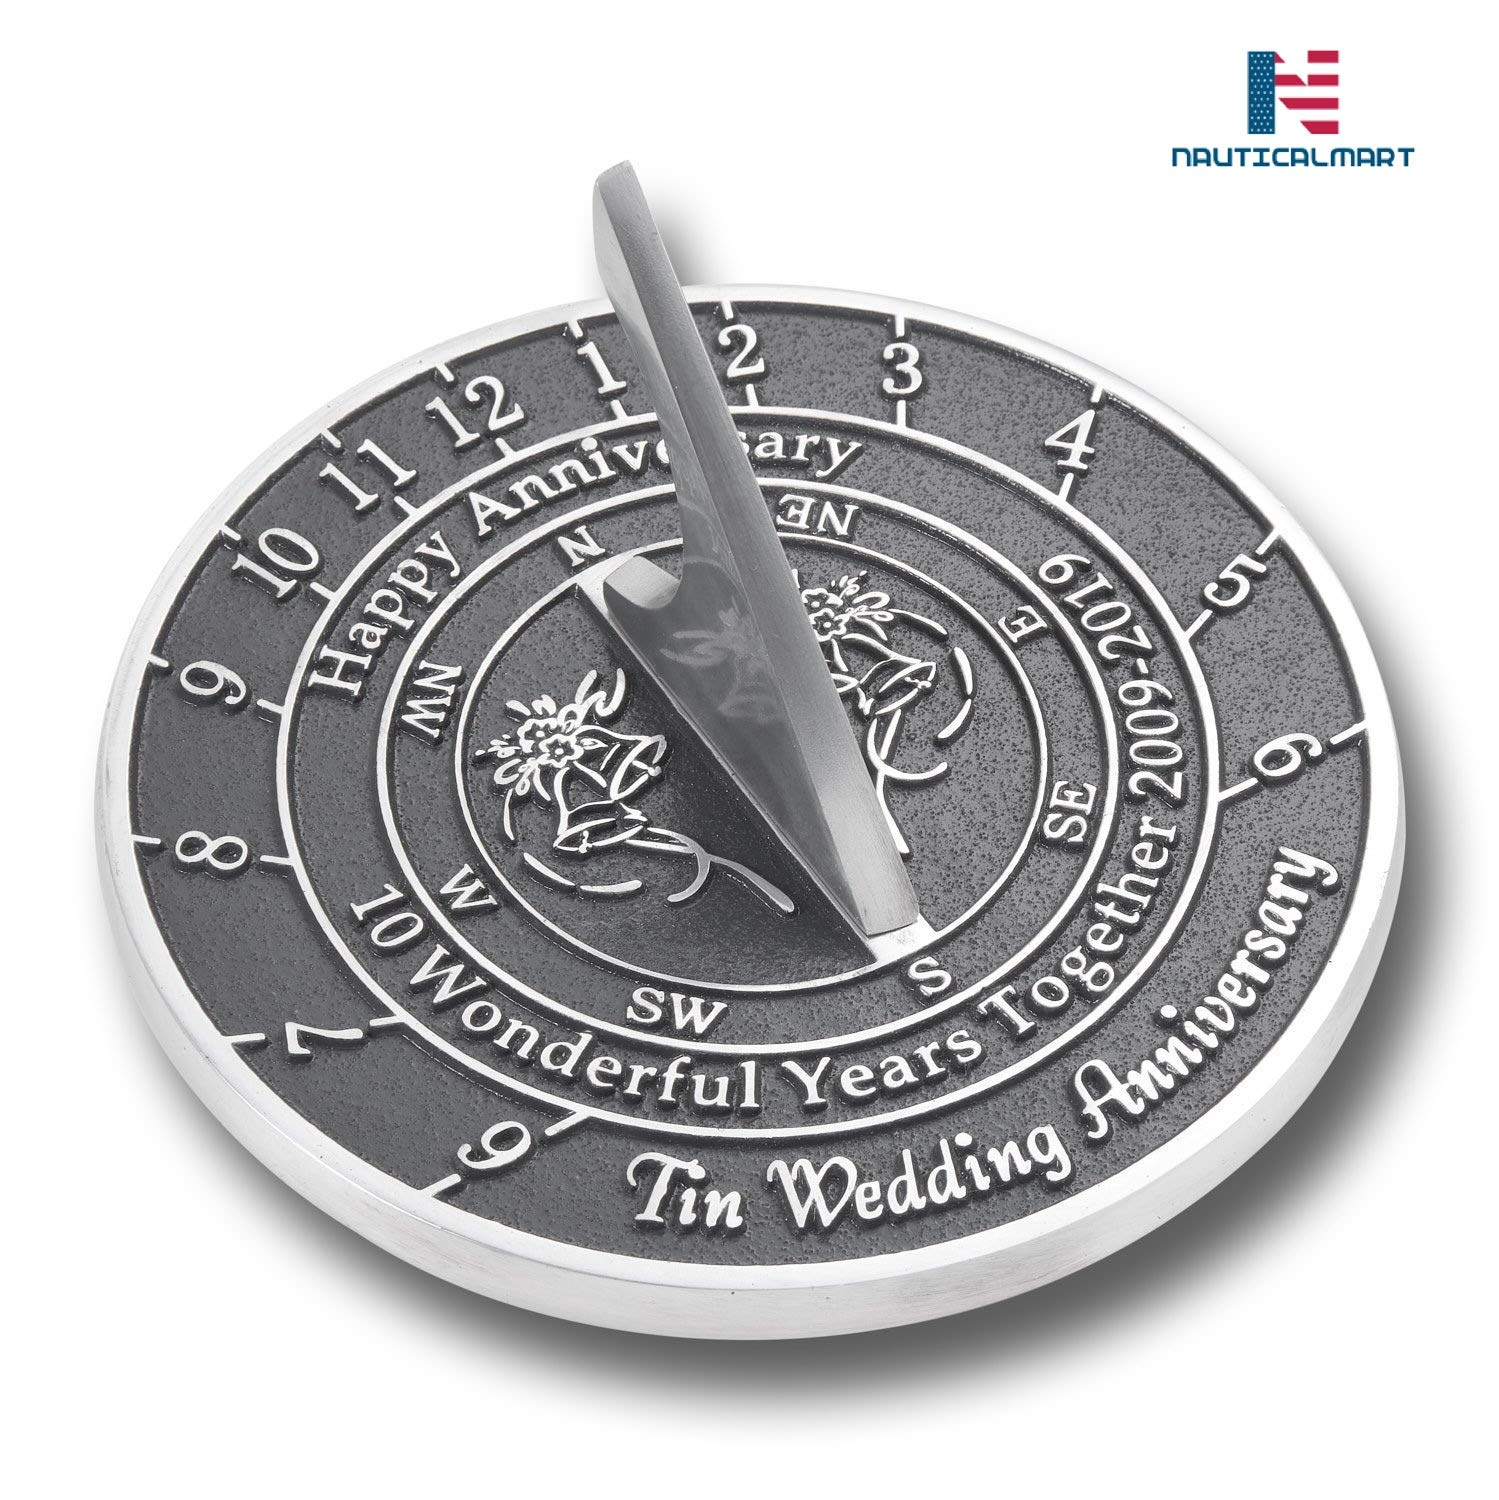 NAUTICALMART Looking for The Best 10th Tin Wedding This Unique Sundial Gift Idea is A Great Present for Him, for Her Or for A Couple to Celebrate (10th - Tin)